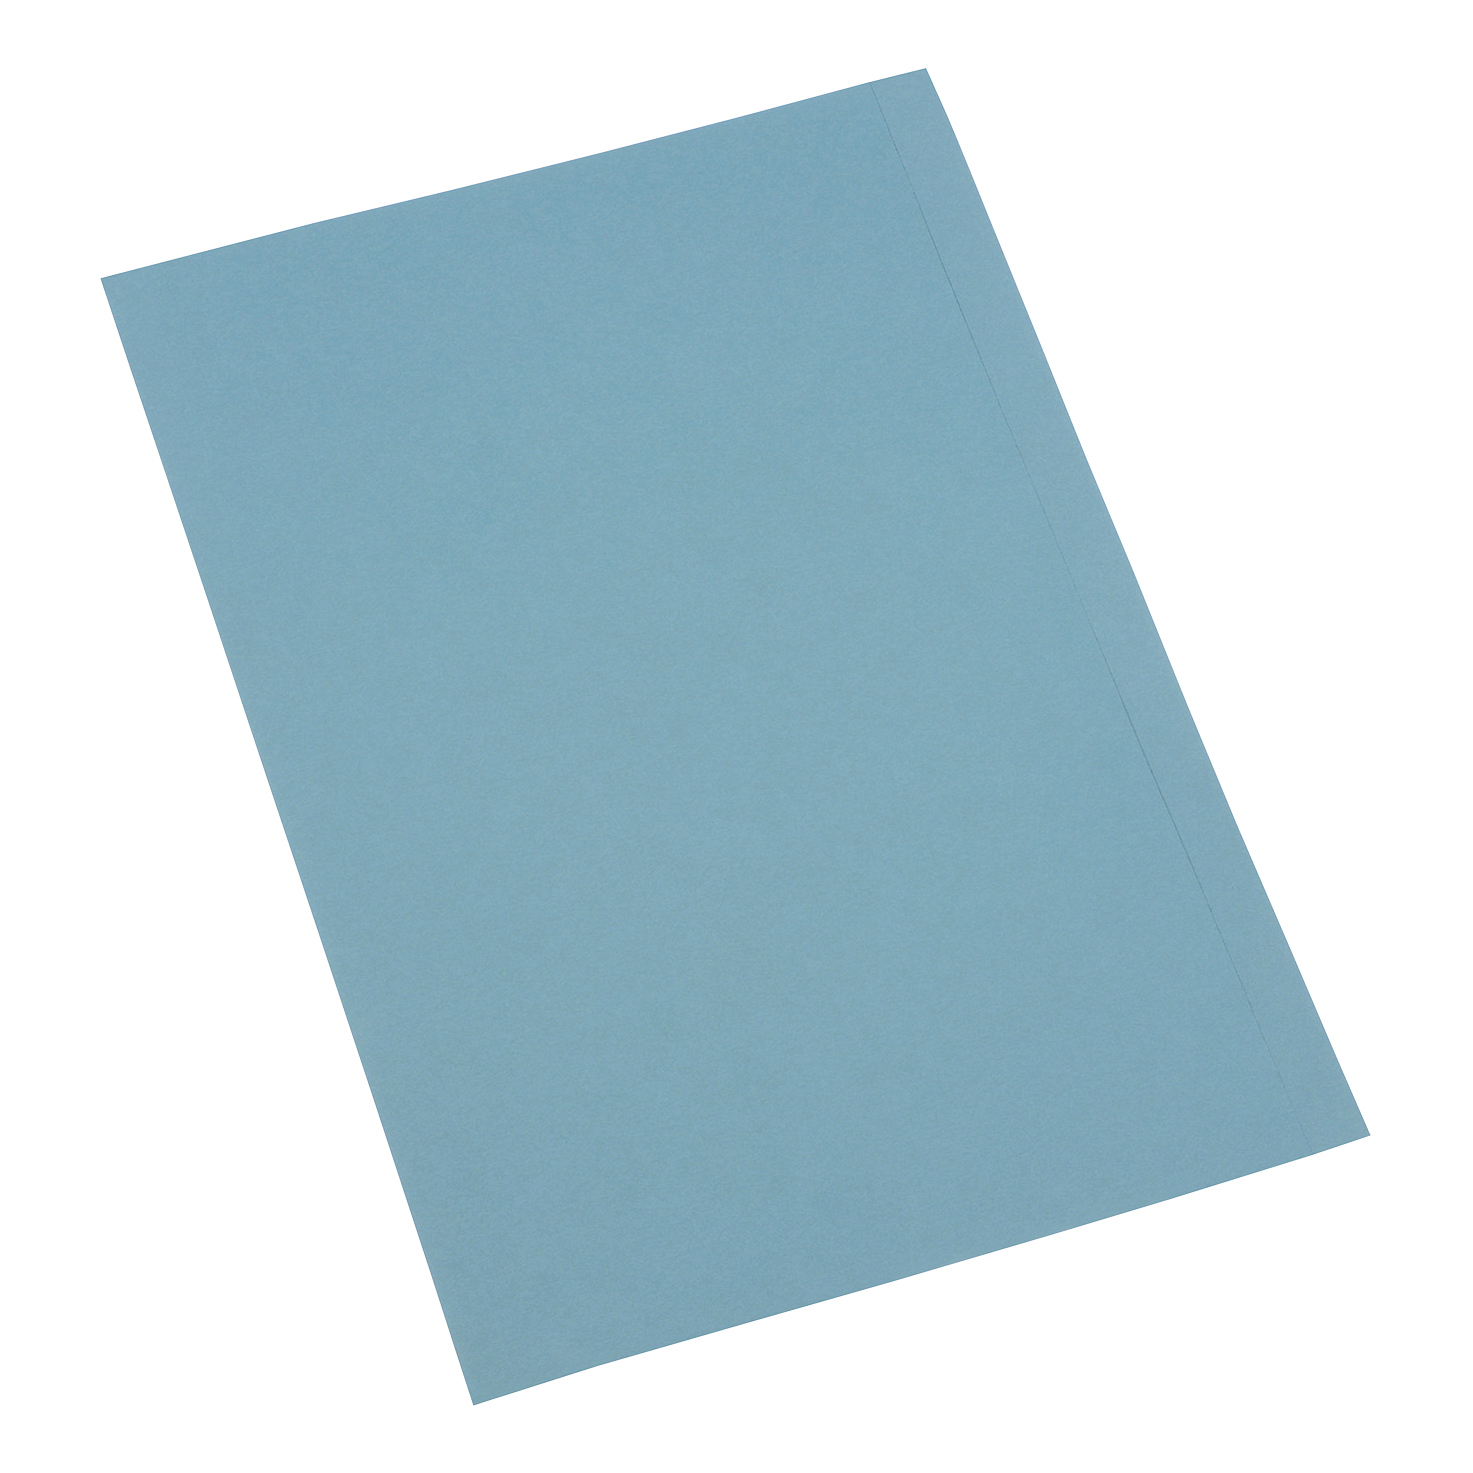 Square Cut Folders 5 Star Office Square Cut Folder Recycled 250gsm Foolscap Blue Pack 100